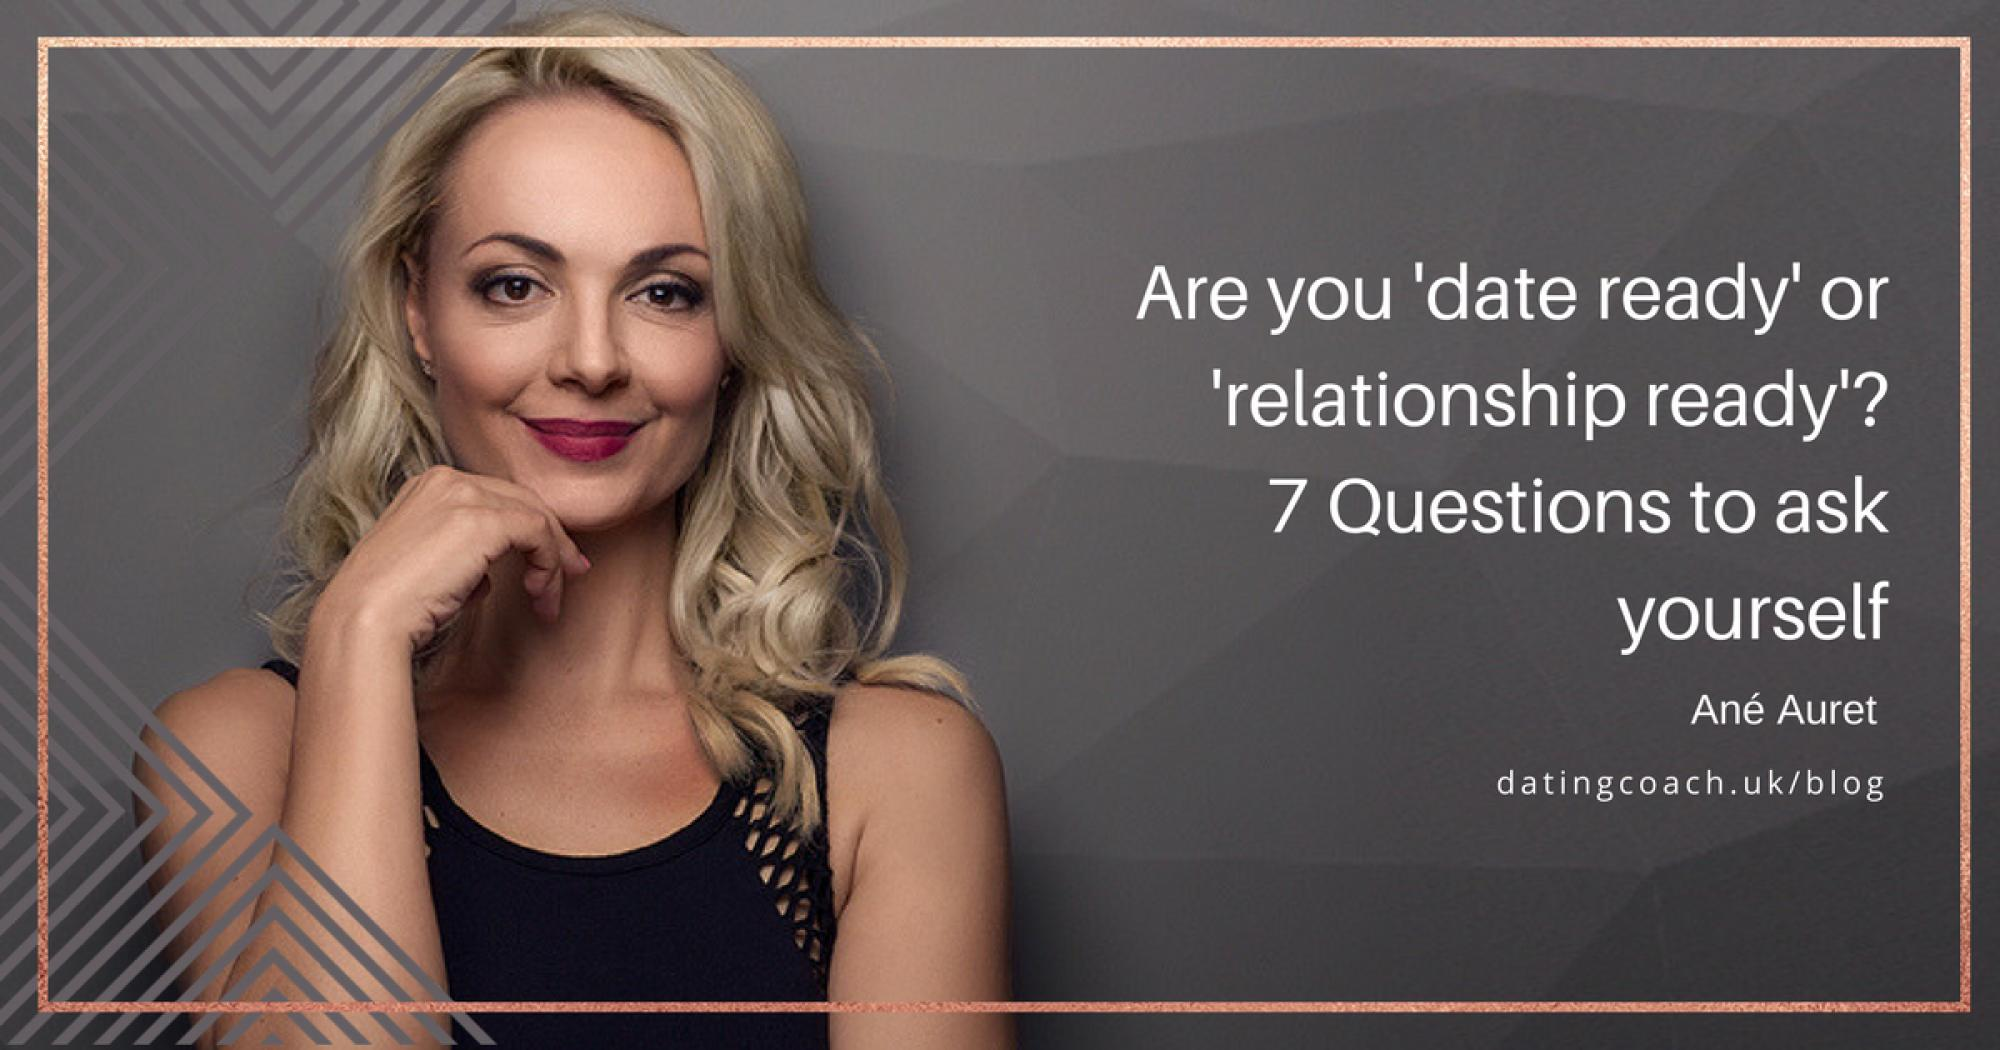 LORENA: Questions to ask yourself when dating